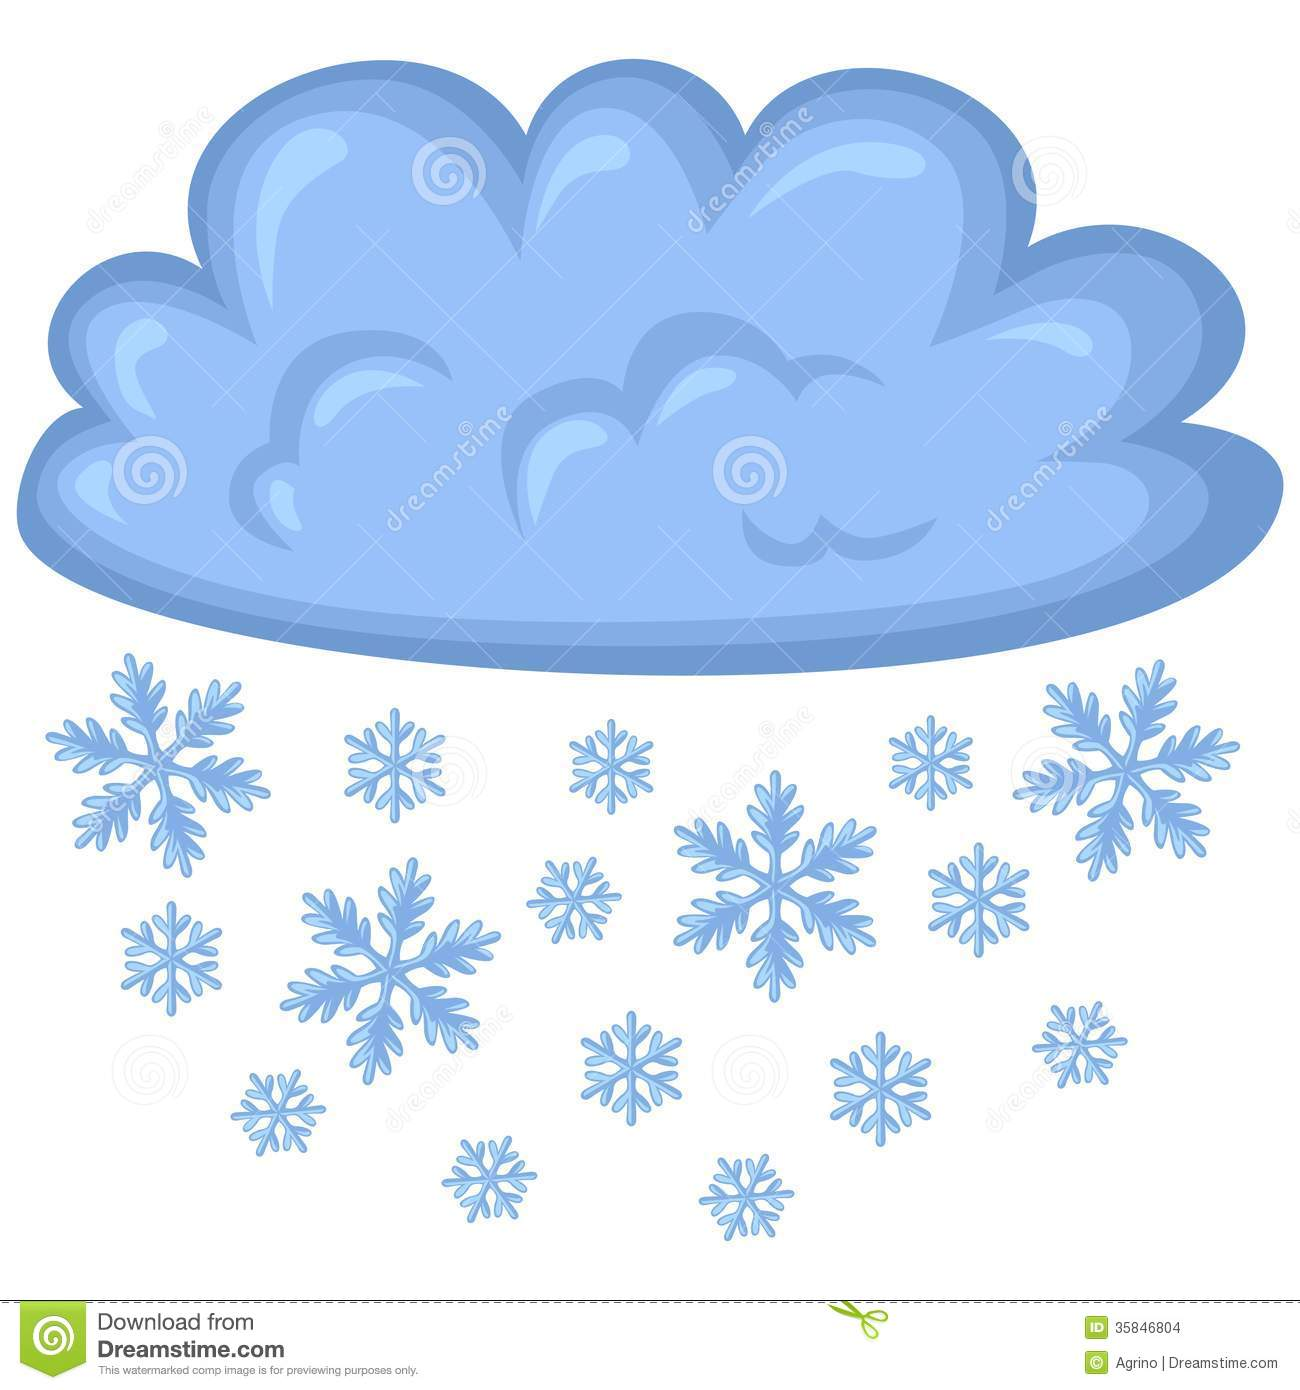 Cloud Of Snow Stock Images - Image: 35846804